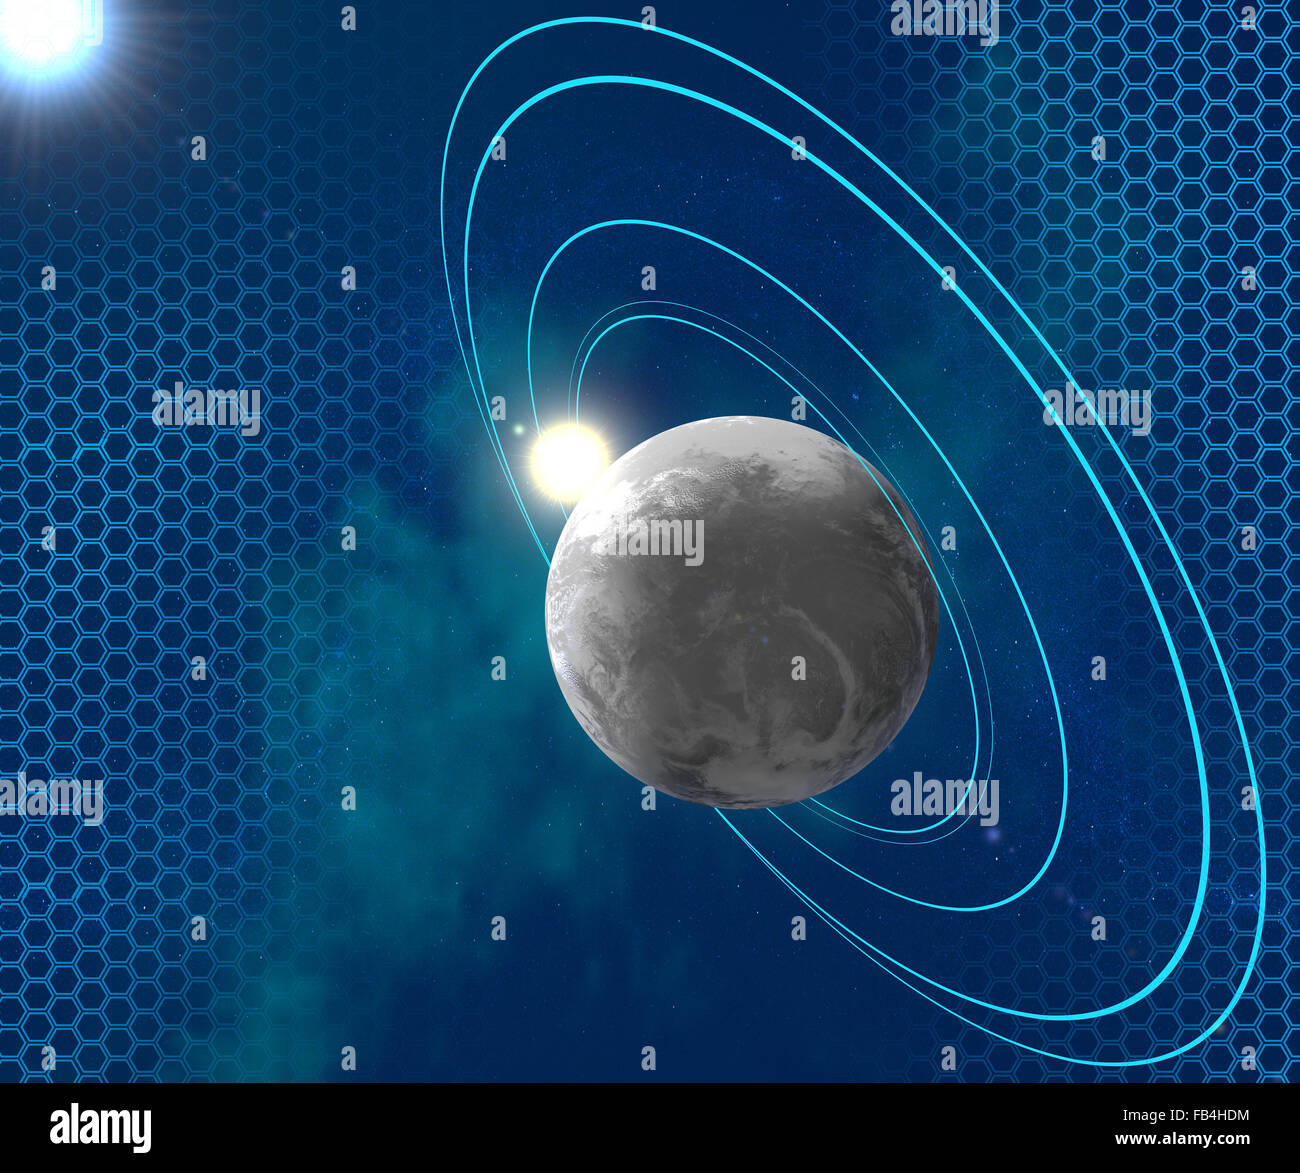 Planet surrounded by orbital rings blue, space, science fiction - Stock Image